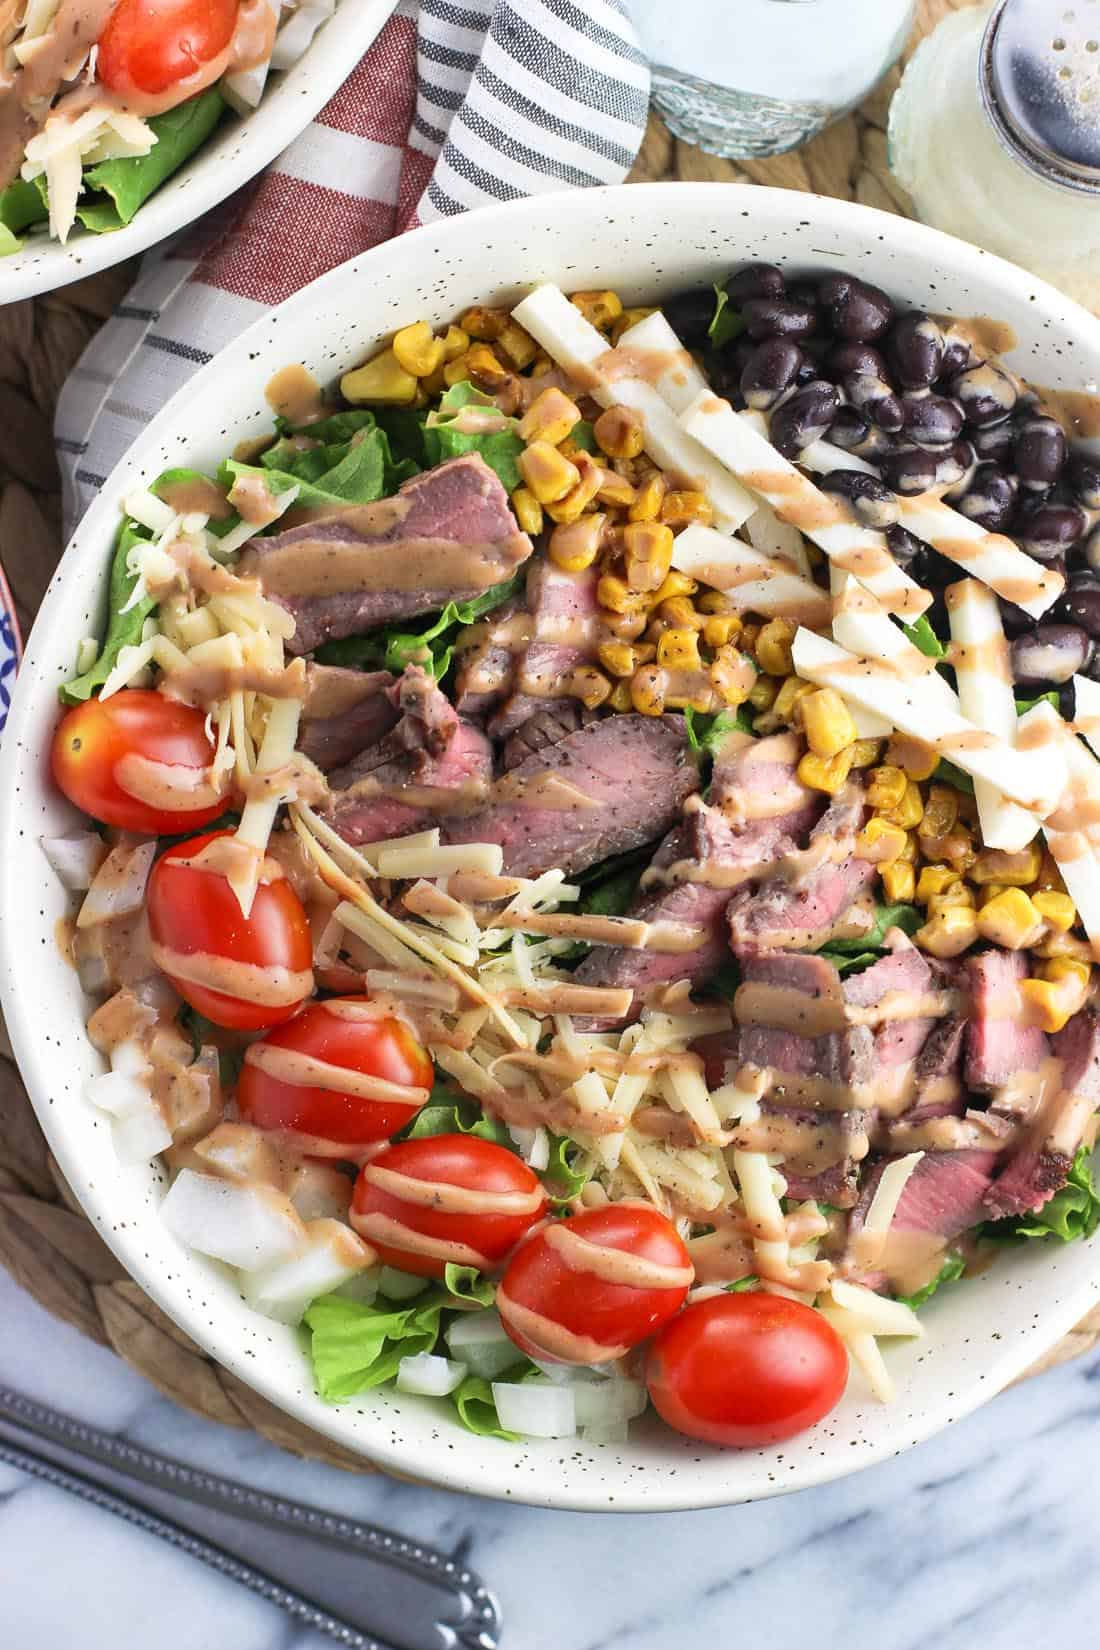 A steak salad in a large bowl with many toppings and drizzled with BBQ ranch dressing.